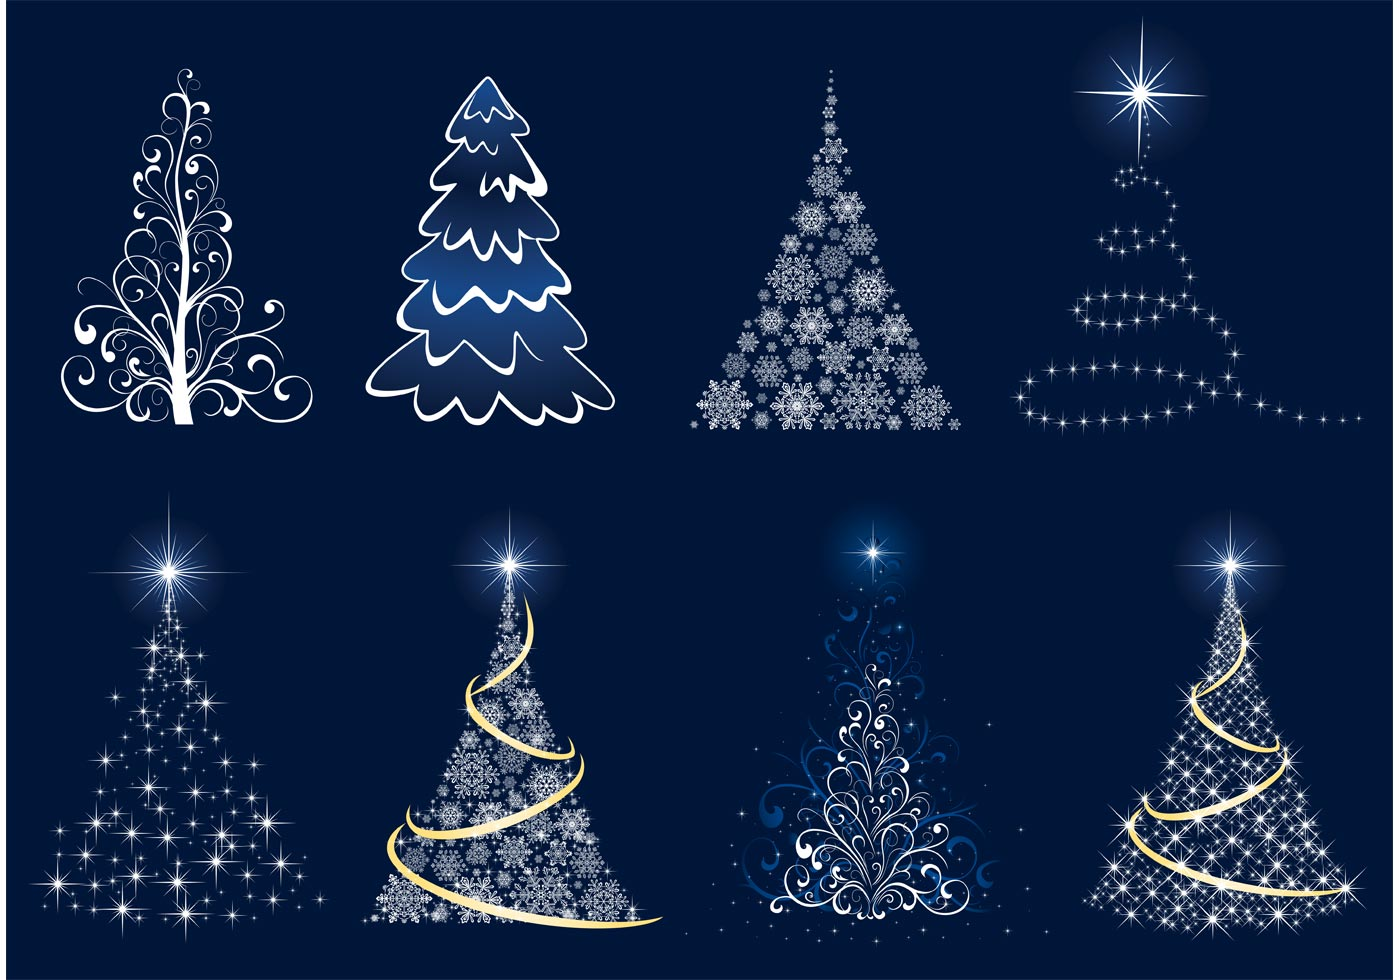 Download Free Vector Art Stock: Christmas Tree Vector Graphics